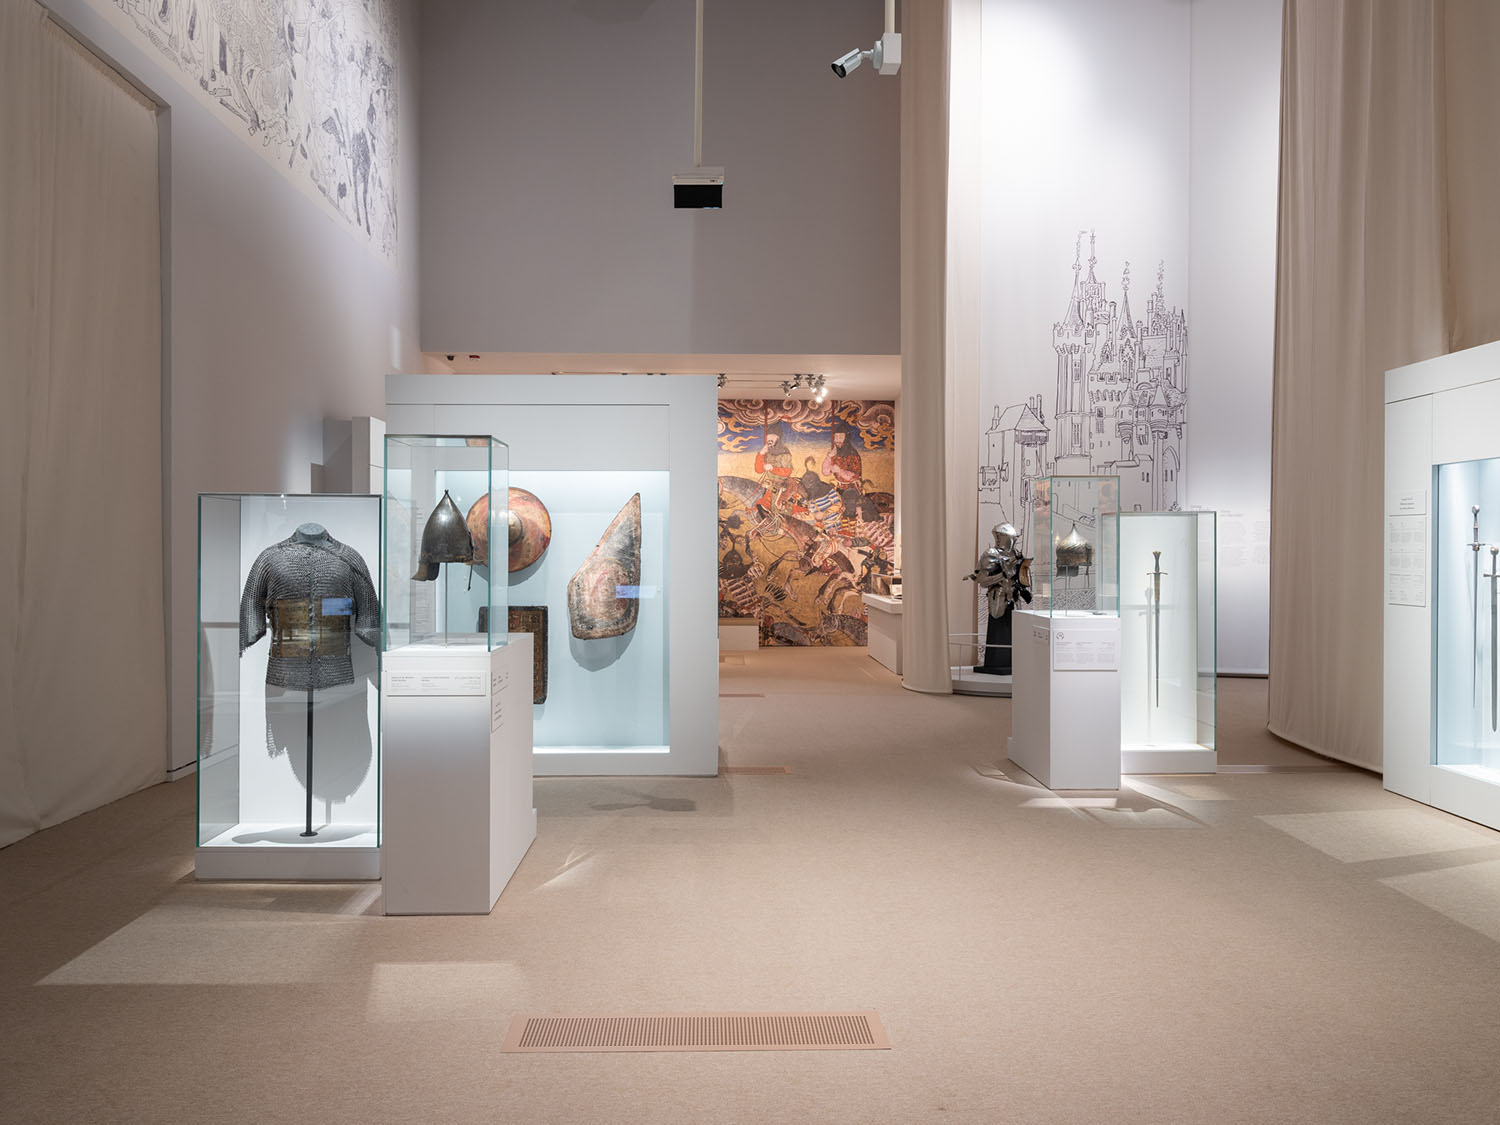 """Exhibition """"Furusiyya: The Art of Chivalry between East and West"""" organized by Louvre Abu Dhabi, Musée de Cluny and France Muséums in 2020"""